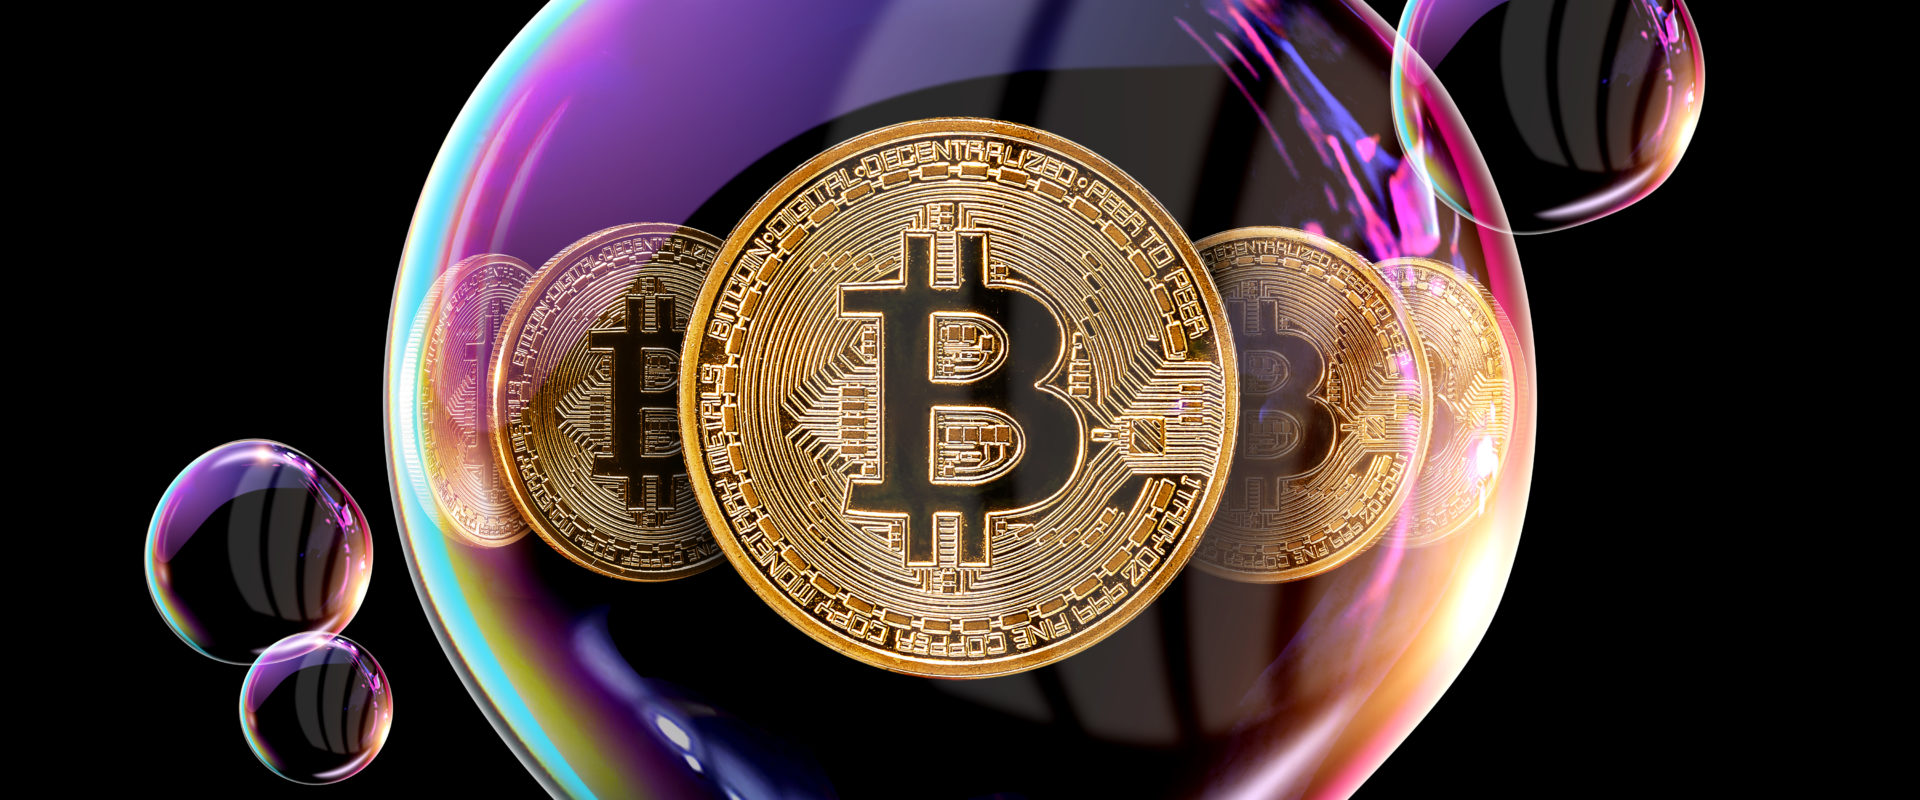 Why The Next Bitcoin Bull Run Could Eclipse The Last Crypto Bubble